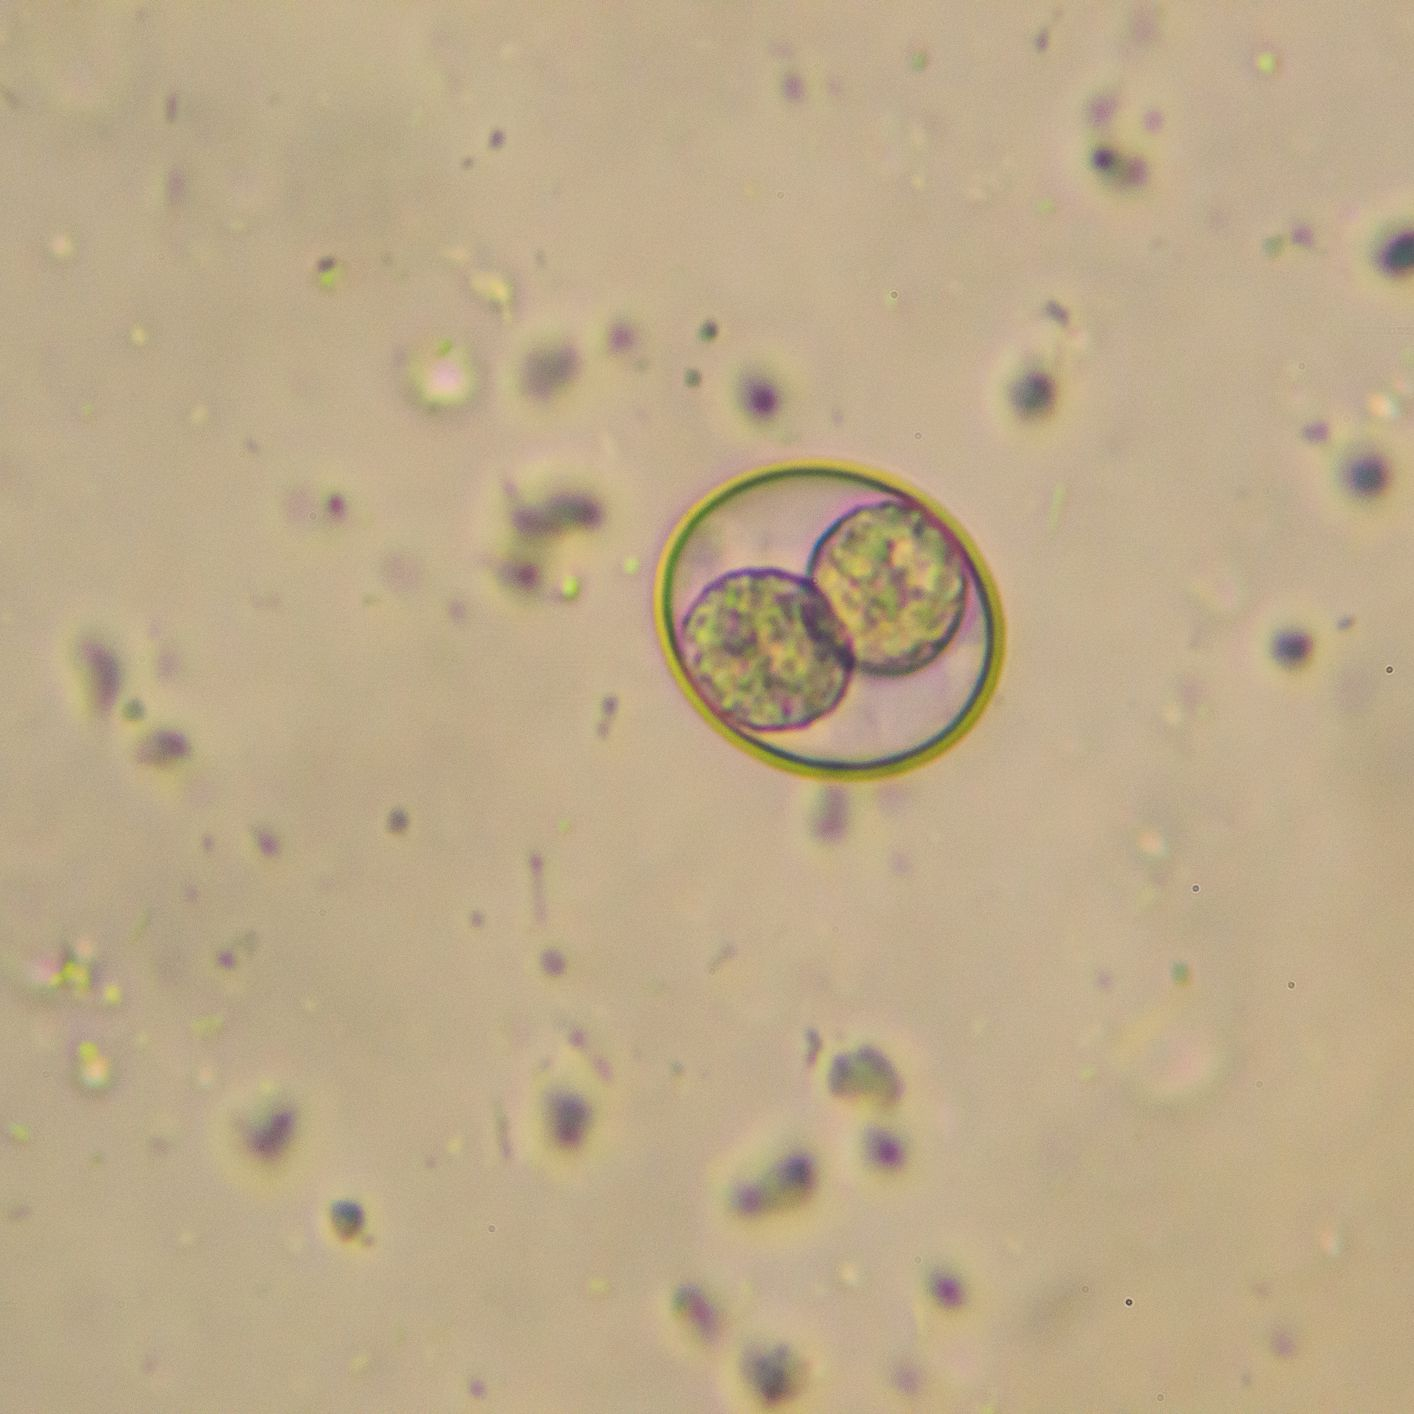 How To Treat Coccidia In Cats